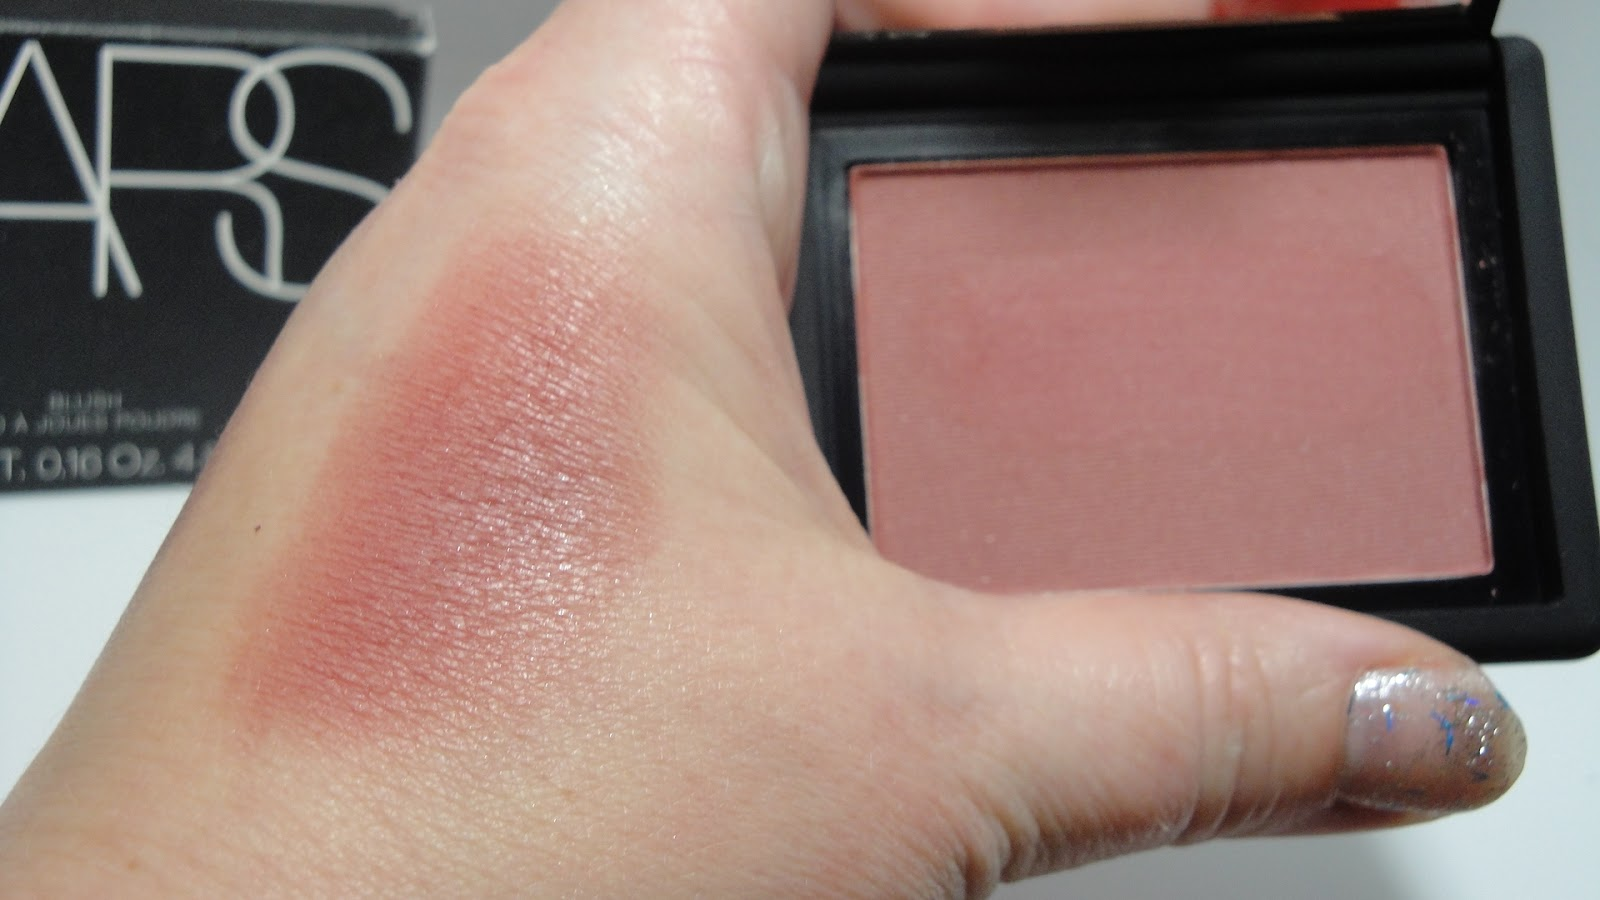 Jayded Dreaming Beauty Blog : DOLCE VITA NARS BLUSH - SWATCHES AND ...